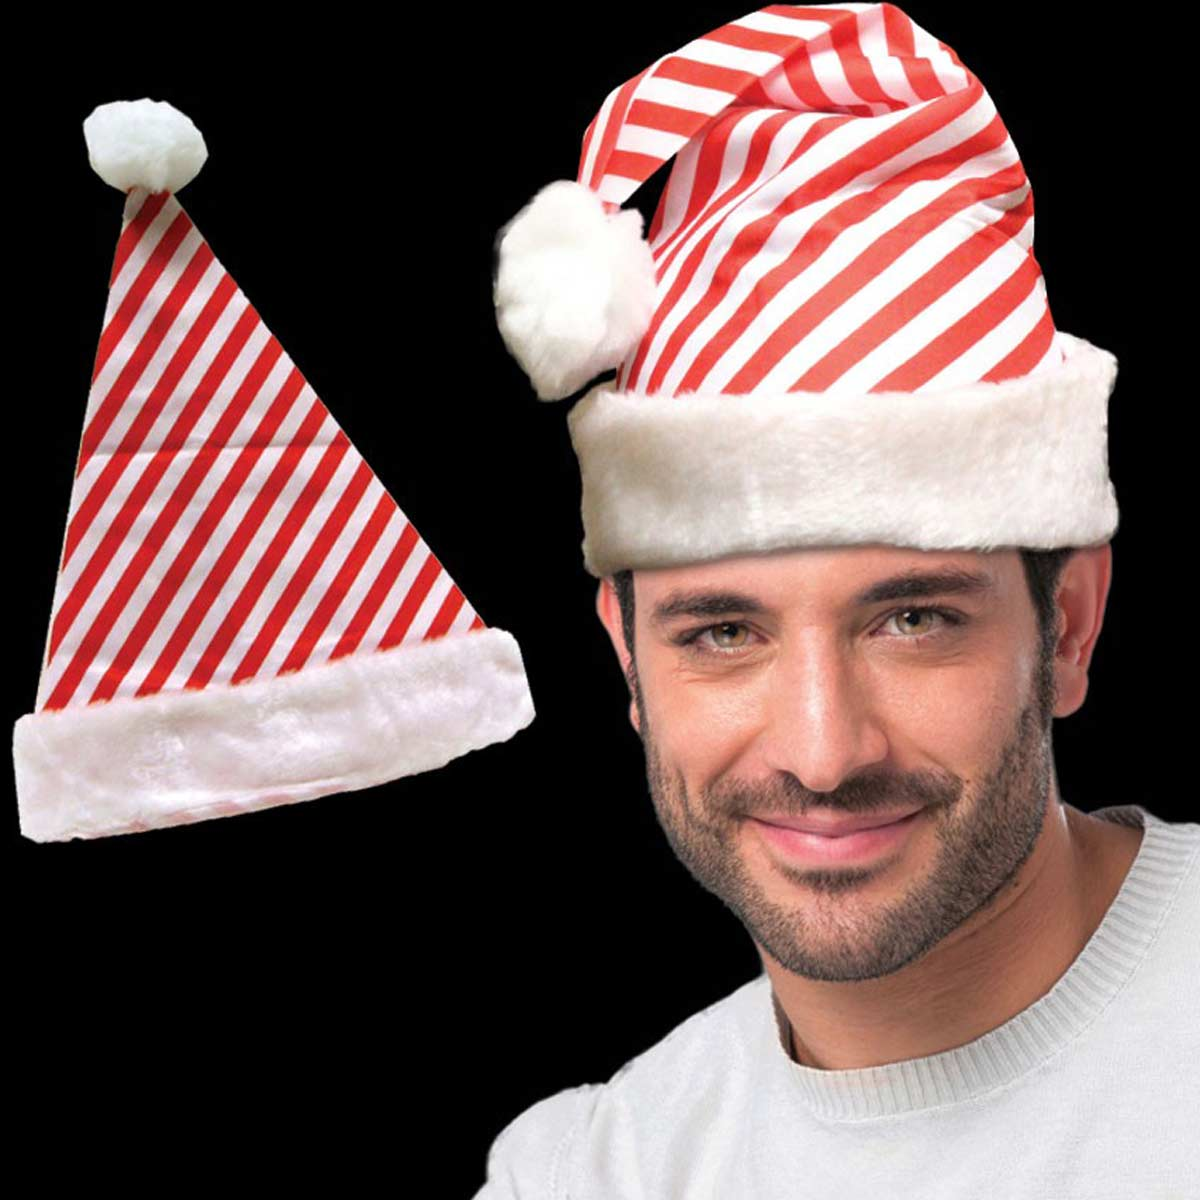 Embroidered Candy Cane Striped Santa Hats